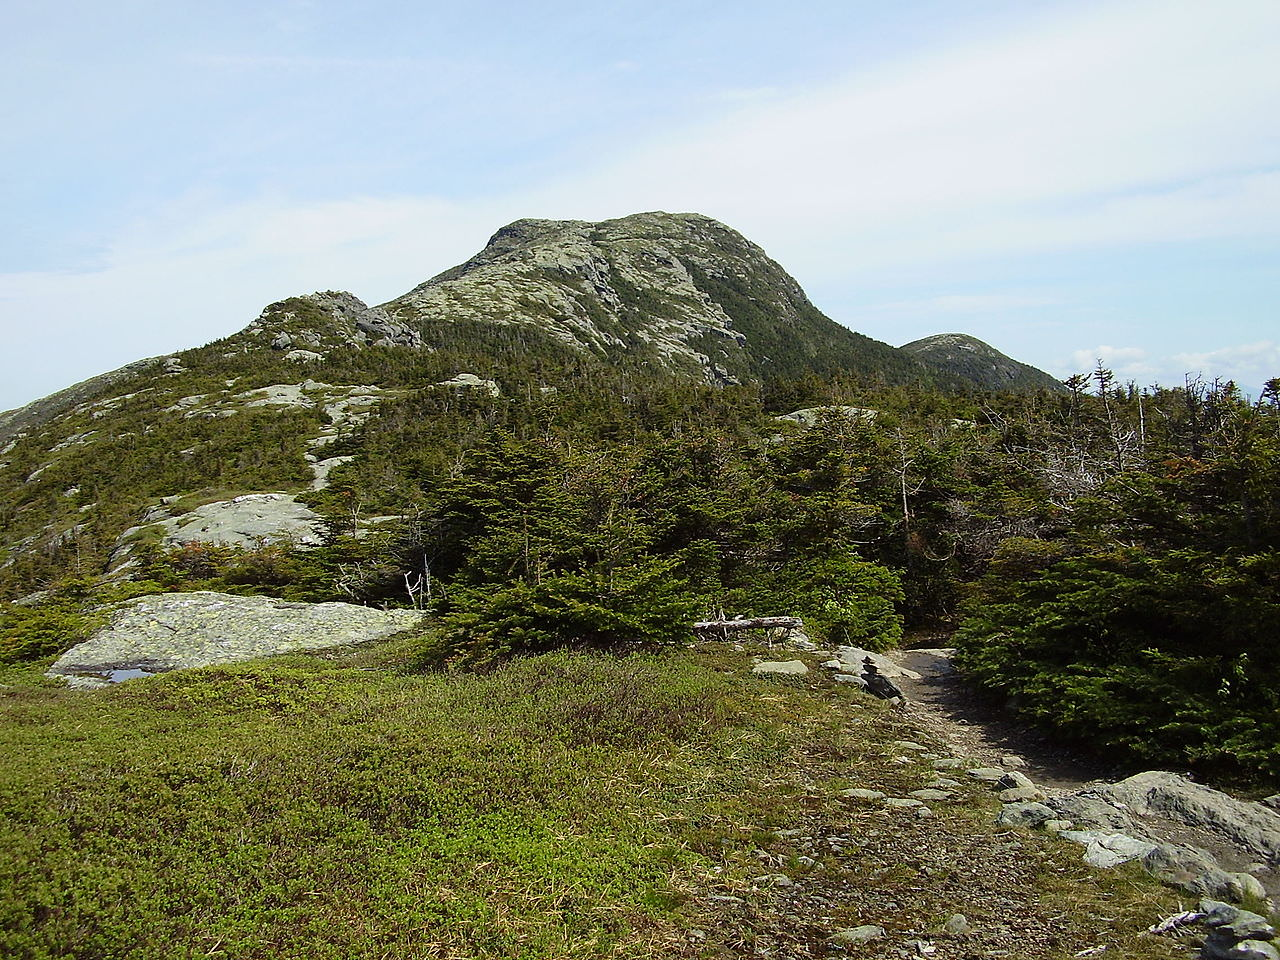 photo: The view of Mansfield's summit from the Long Trail. Photo by Calzarette/wiki.